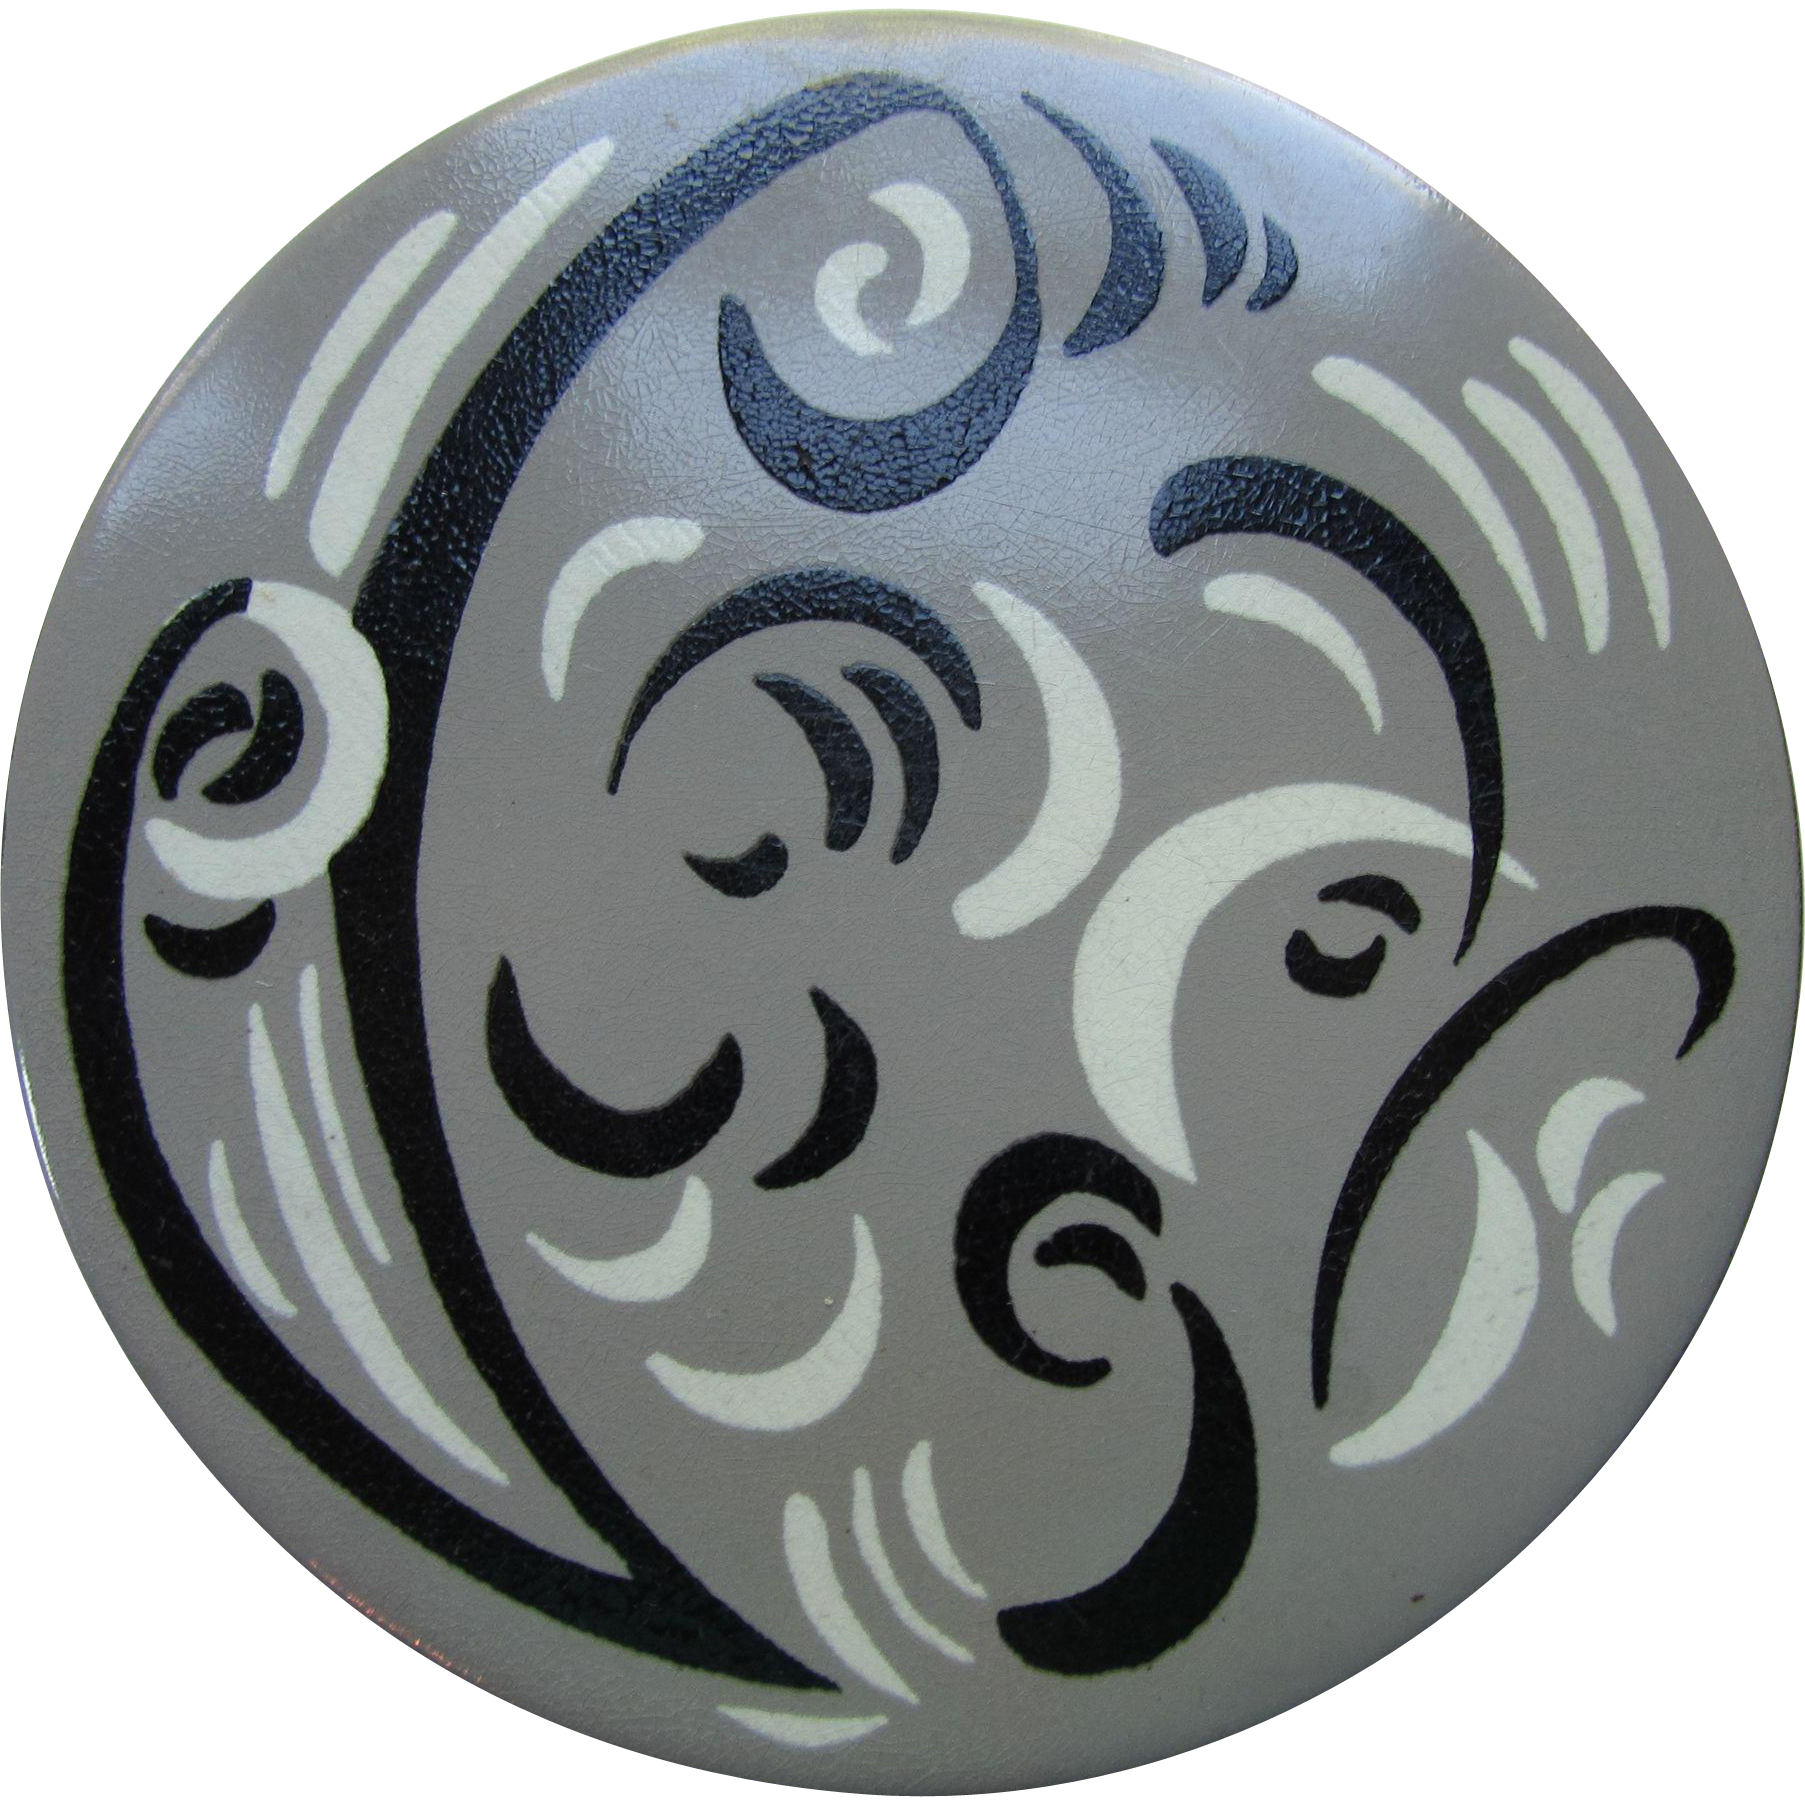 Powder Compact in Modern Style Painted Swirls of Gray, Black and White Pilcher Pad